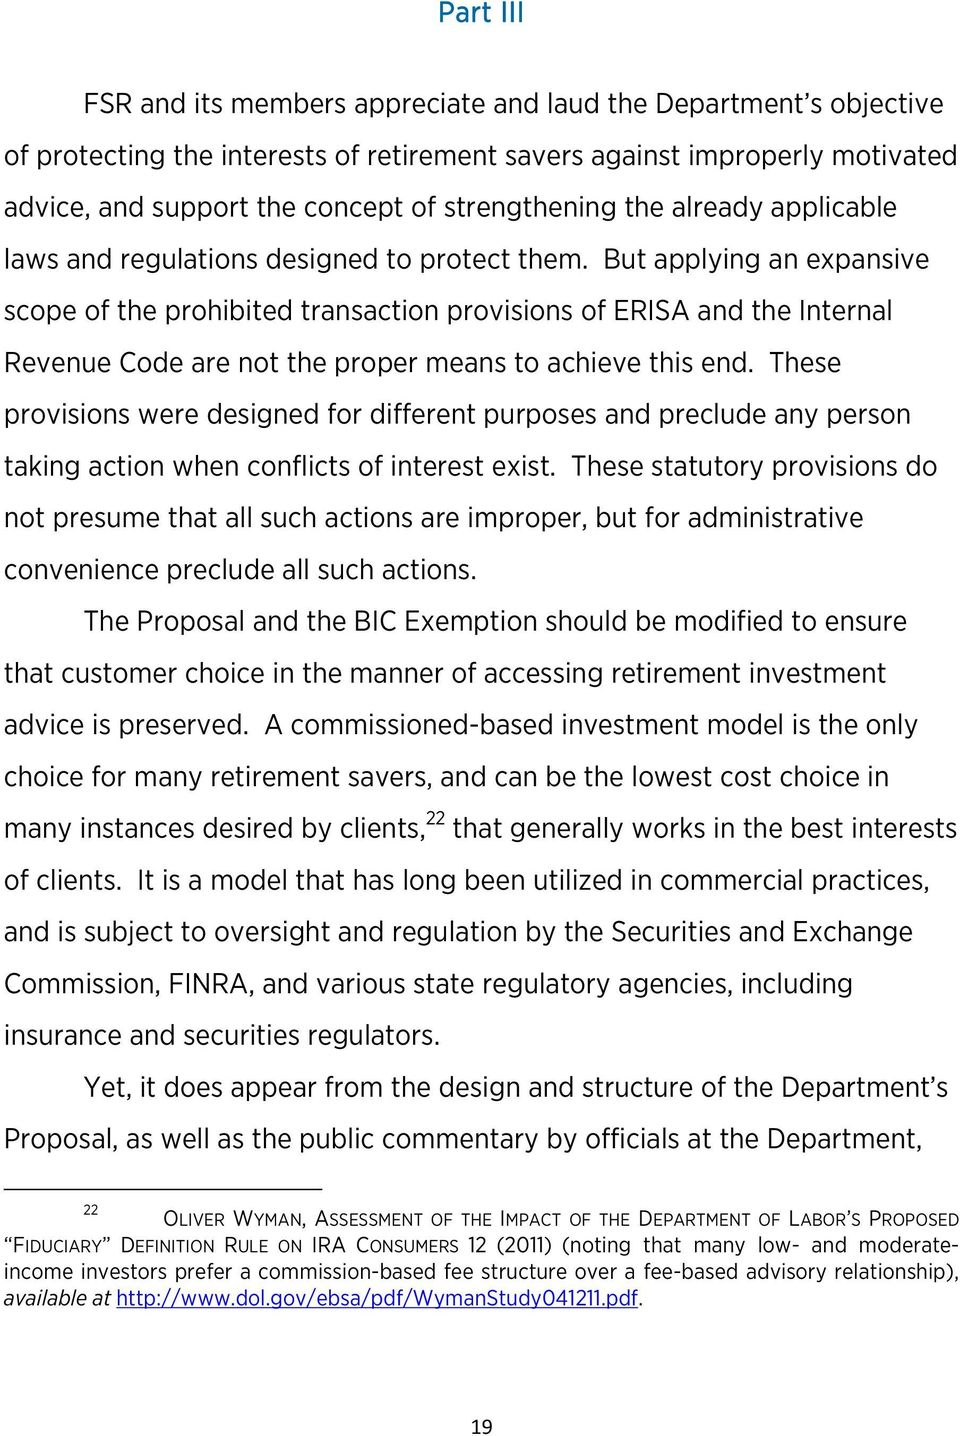 But applying an expansive scope of the prohibited transaction provisions of ERISA and the Internal Revenue Code are not the proper means to achieve this end.